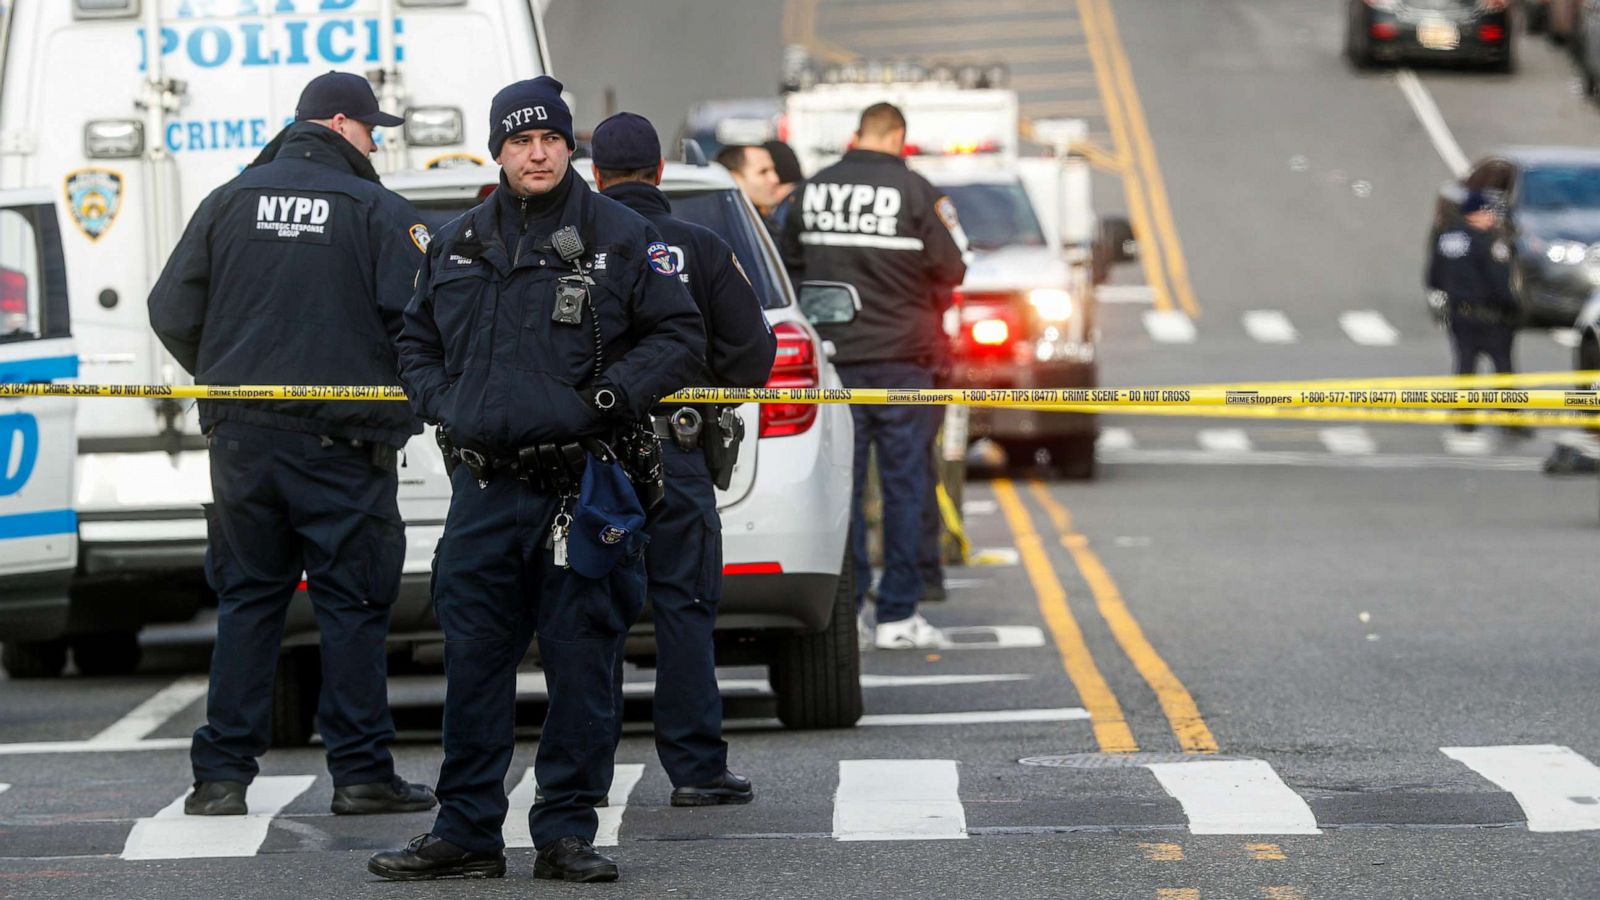 Nypd Alerted Of Credible Threat Toward Officers After Last Week S Assassination Attempt Abc News